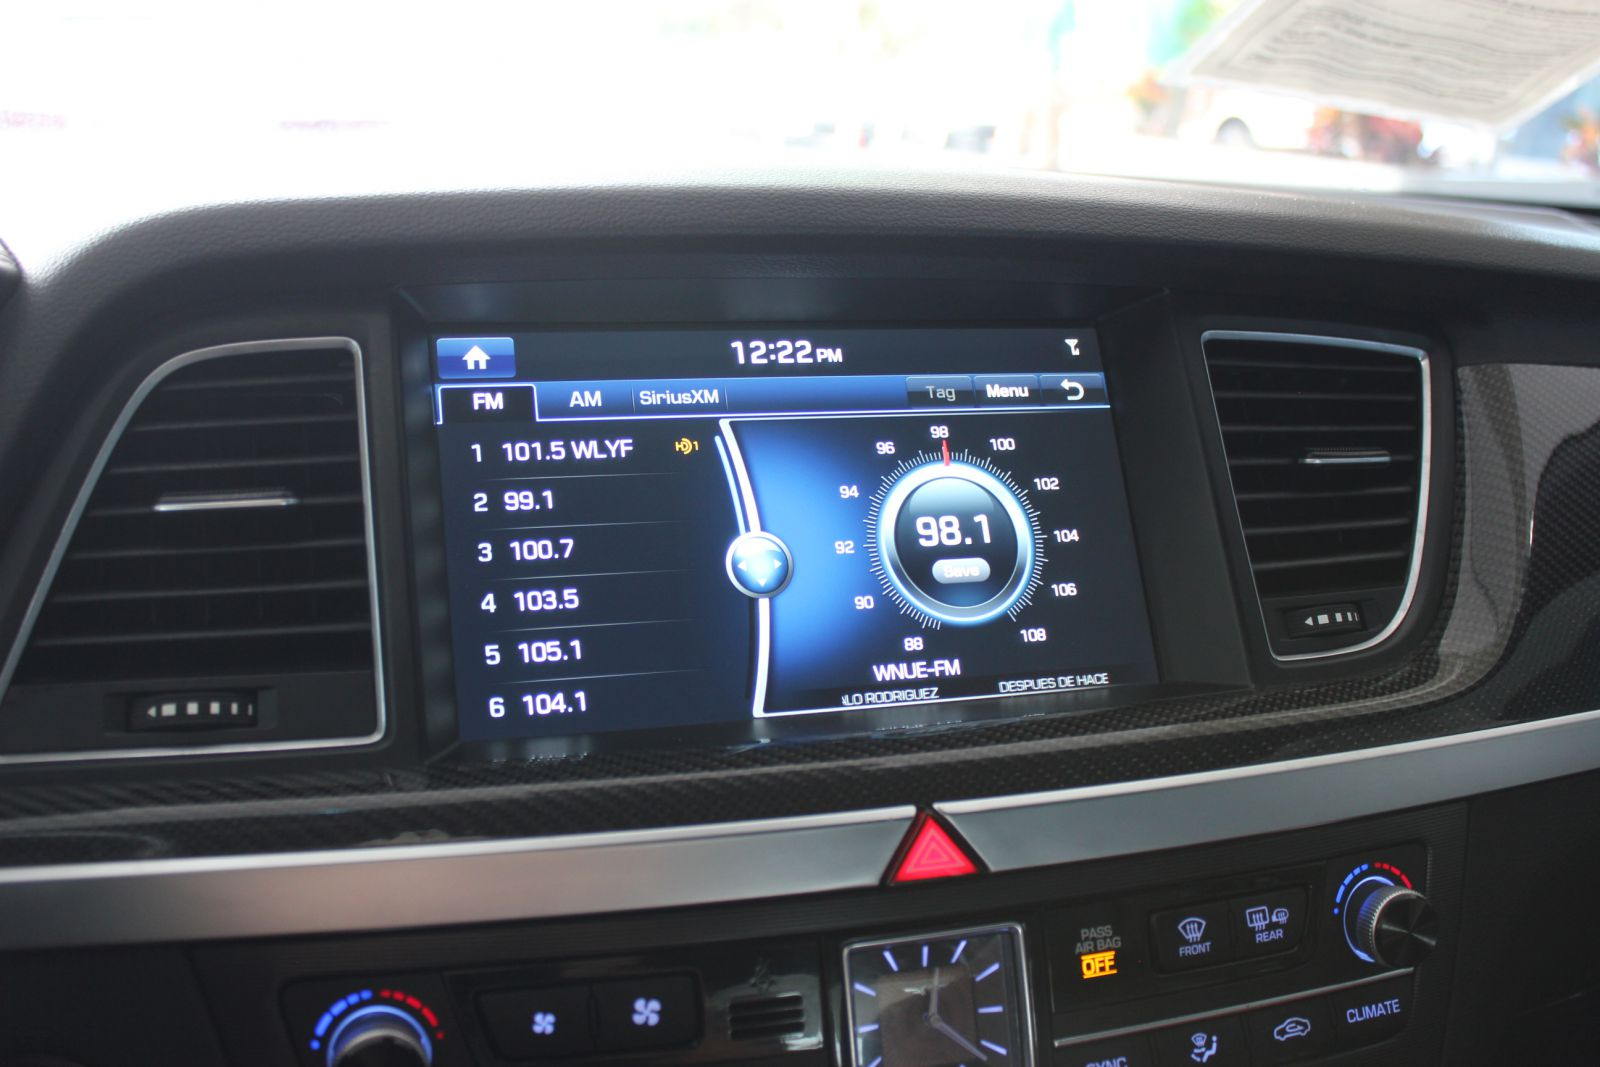 Sample picture showing GPS system on Volkswagen